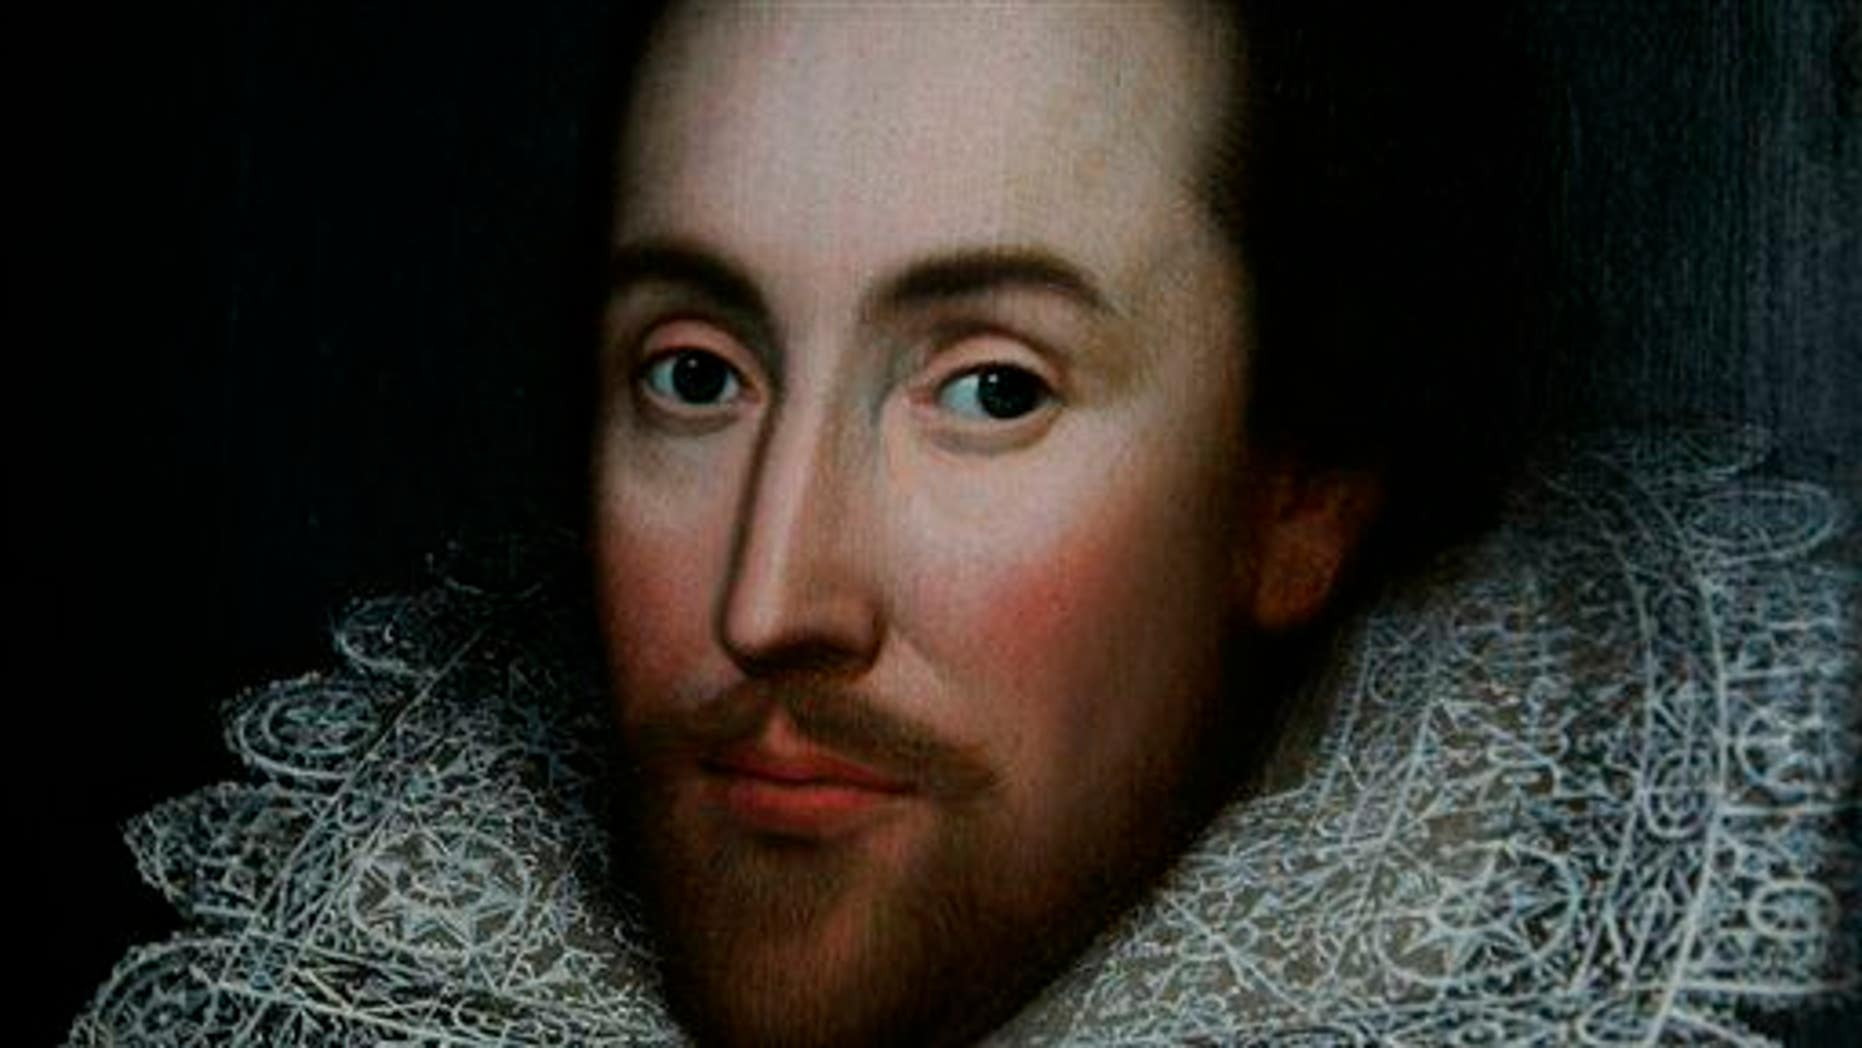 File - A detail of a portrait of William Shakespeare, presented by the Shakespeare Birthplace trust, is seen in central London, Monday March 9, 2009. (AP Photo/Lefteris Pitarakis)